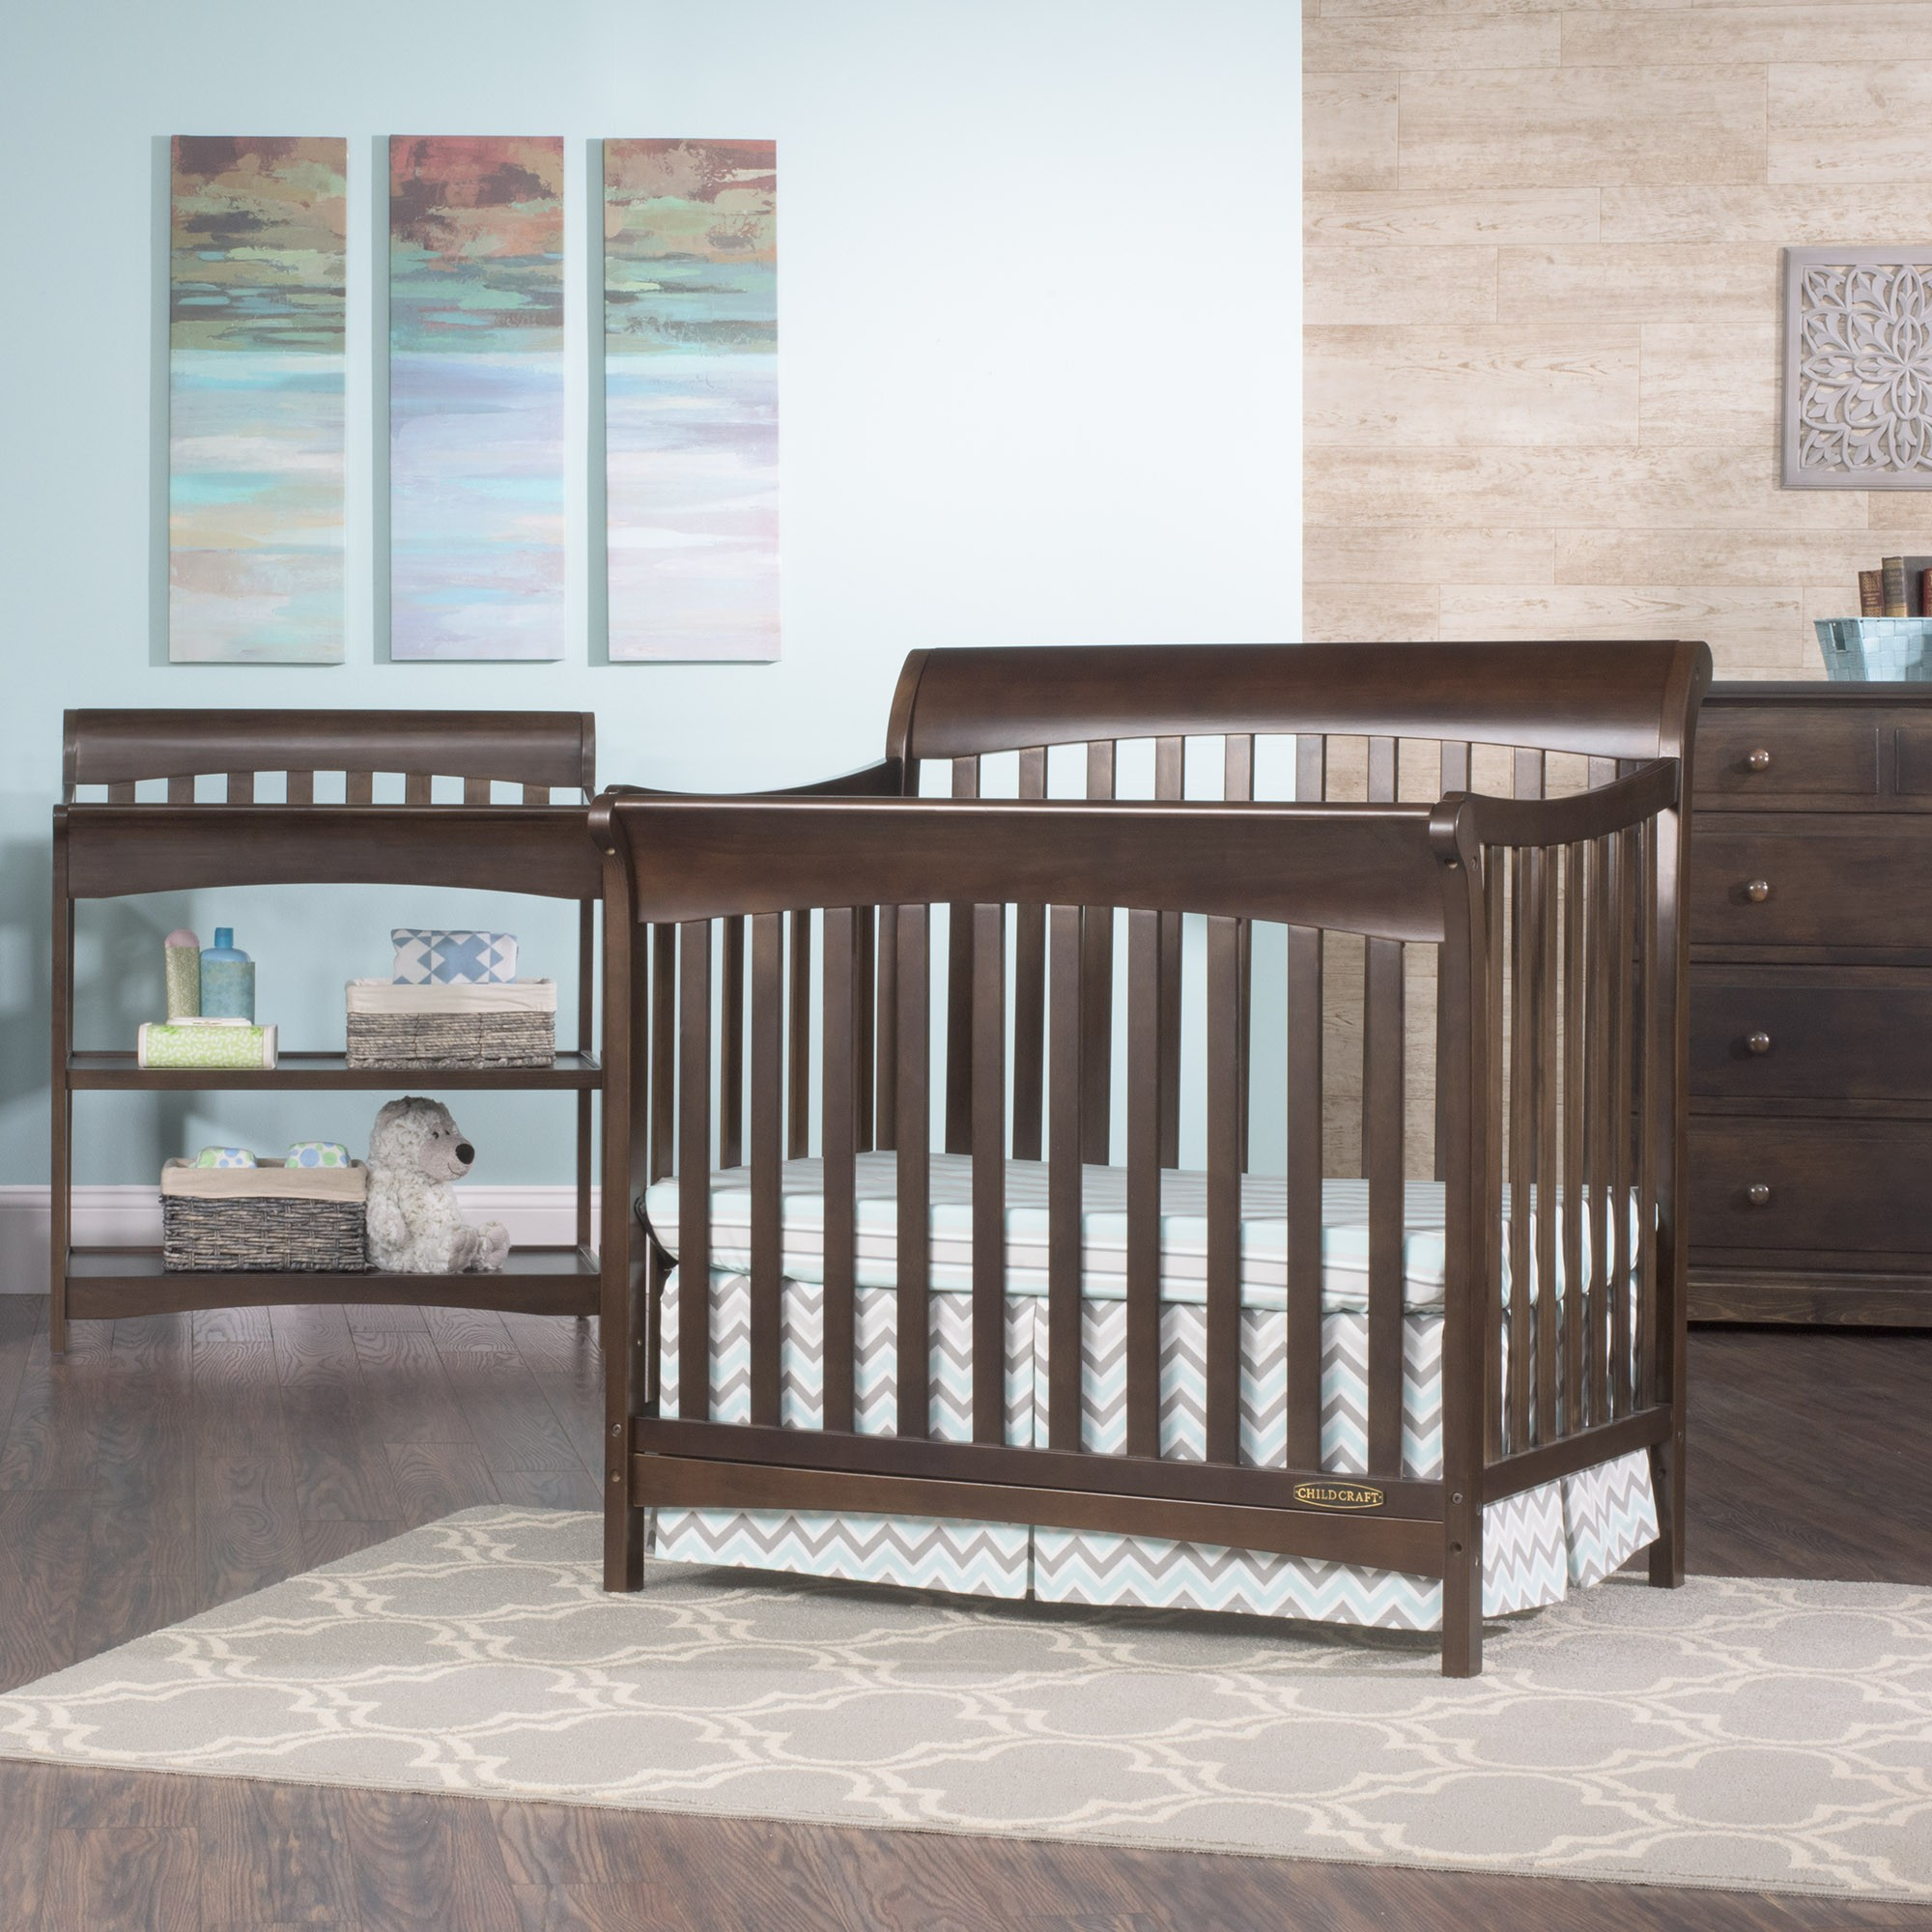 children changing wayfair kids charlotte table pdx delta and crib in baby convertible